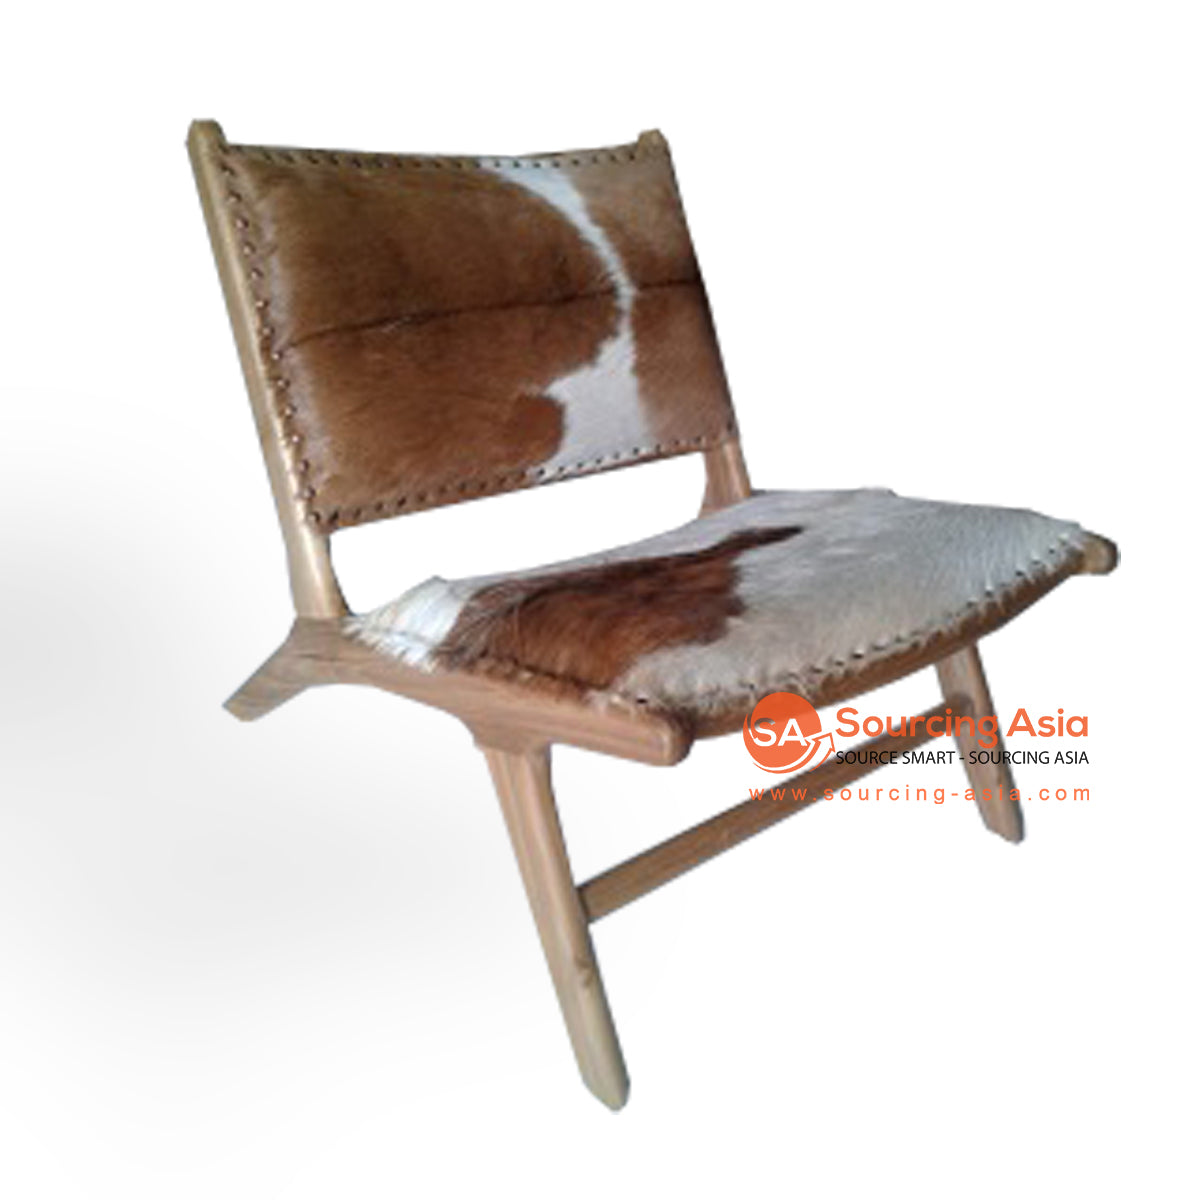 KUSJ002-DW COW HIDE LAZY CHAIR